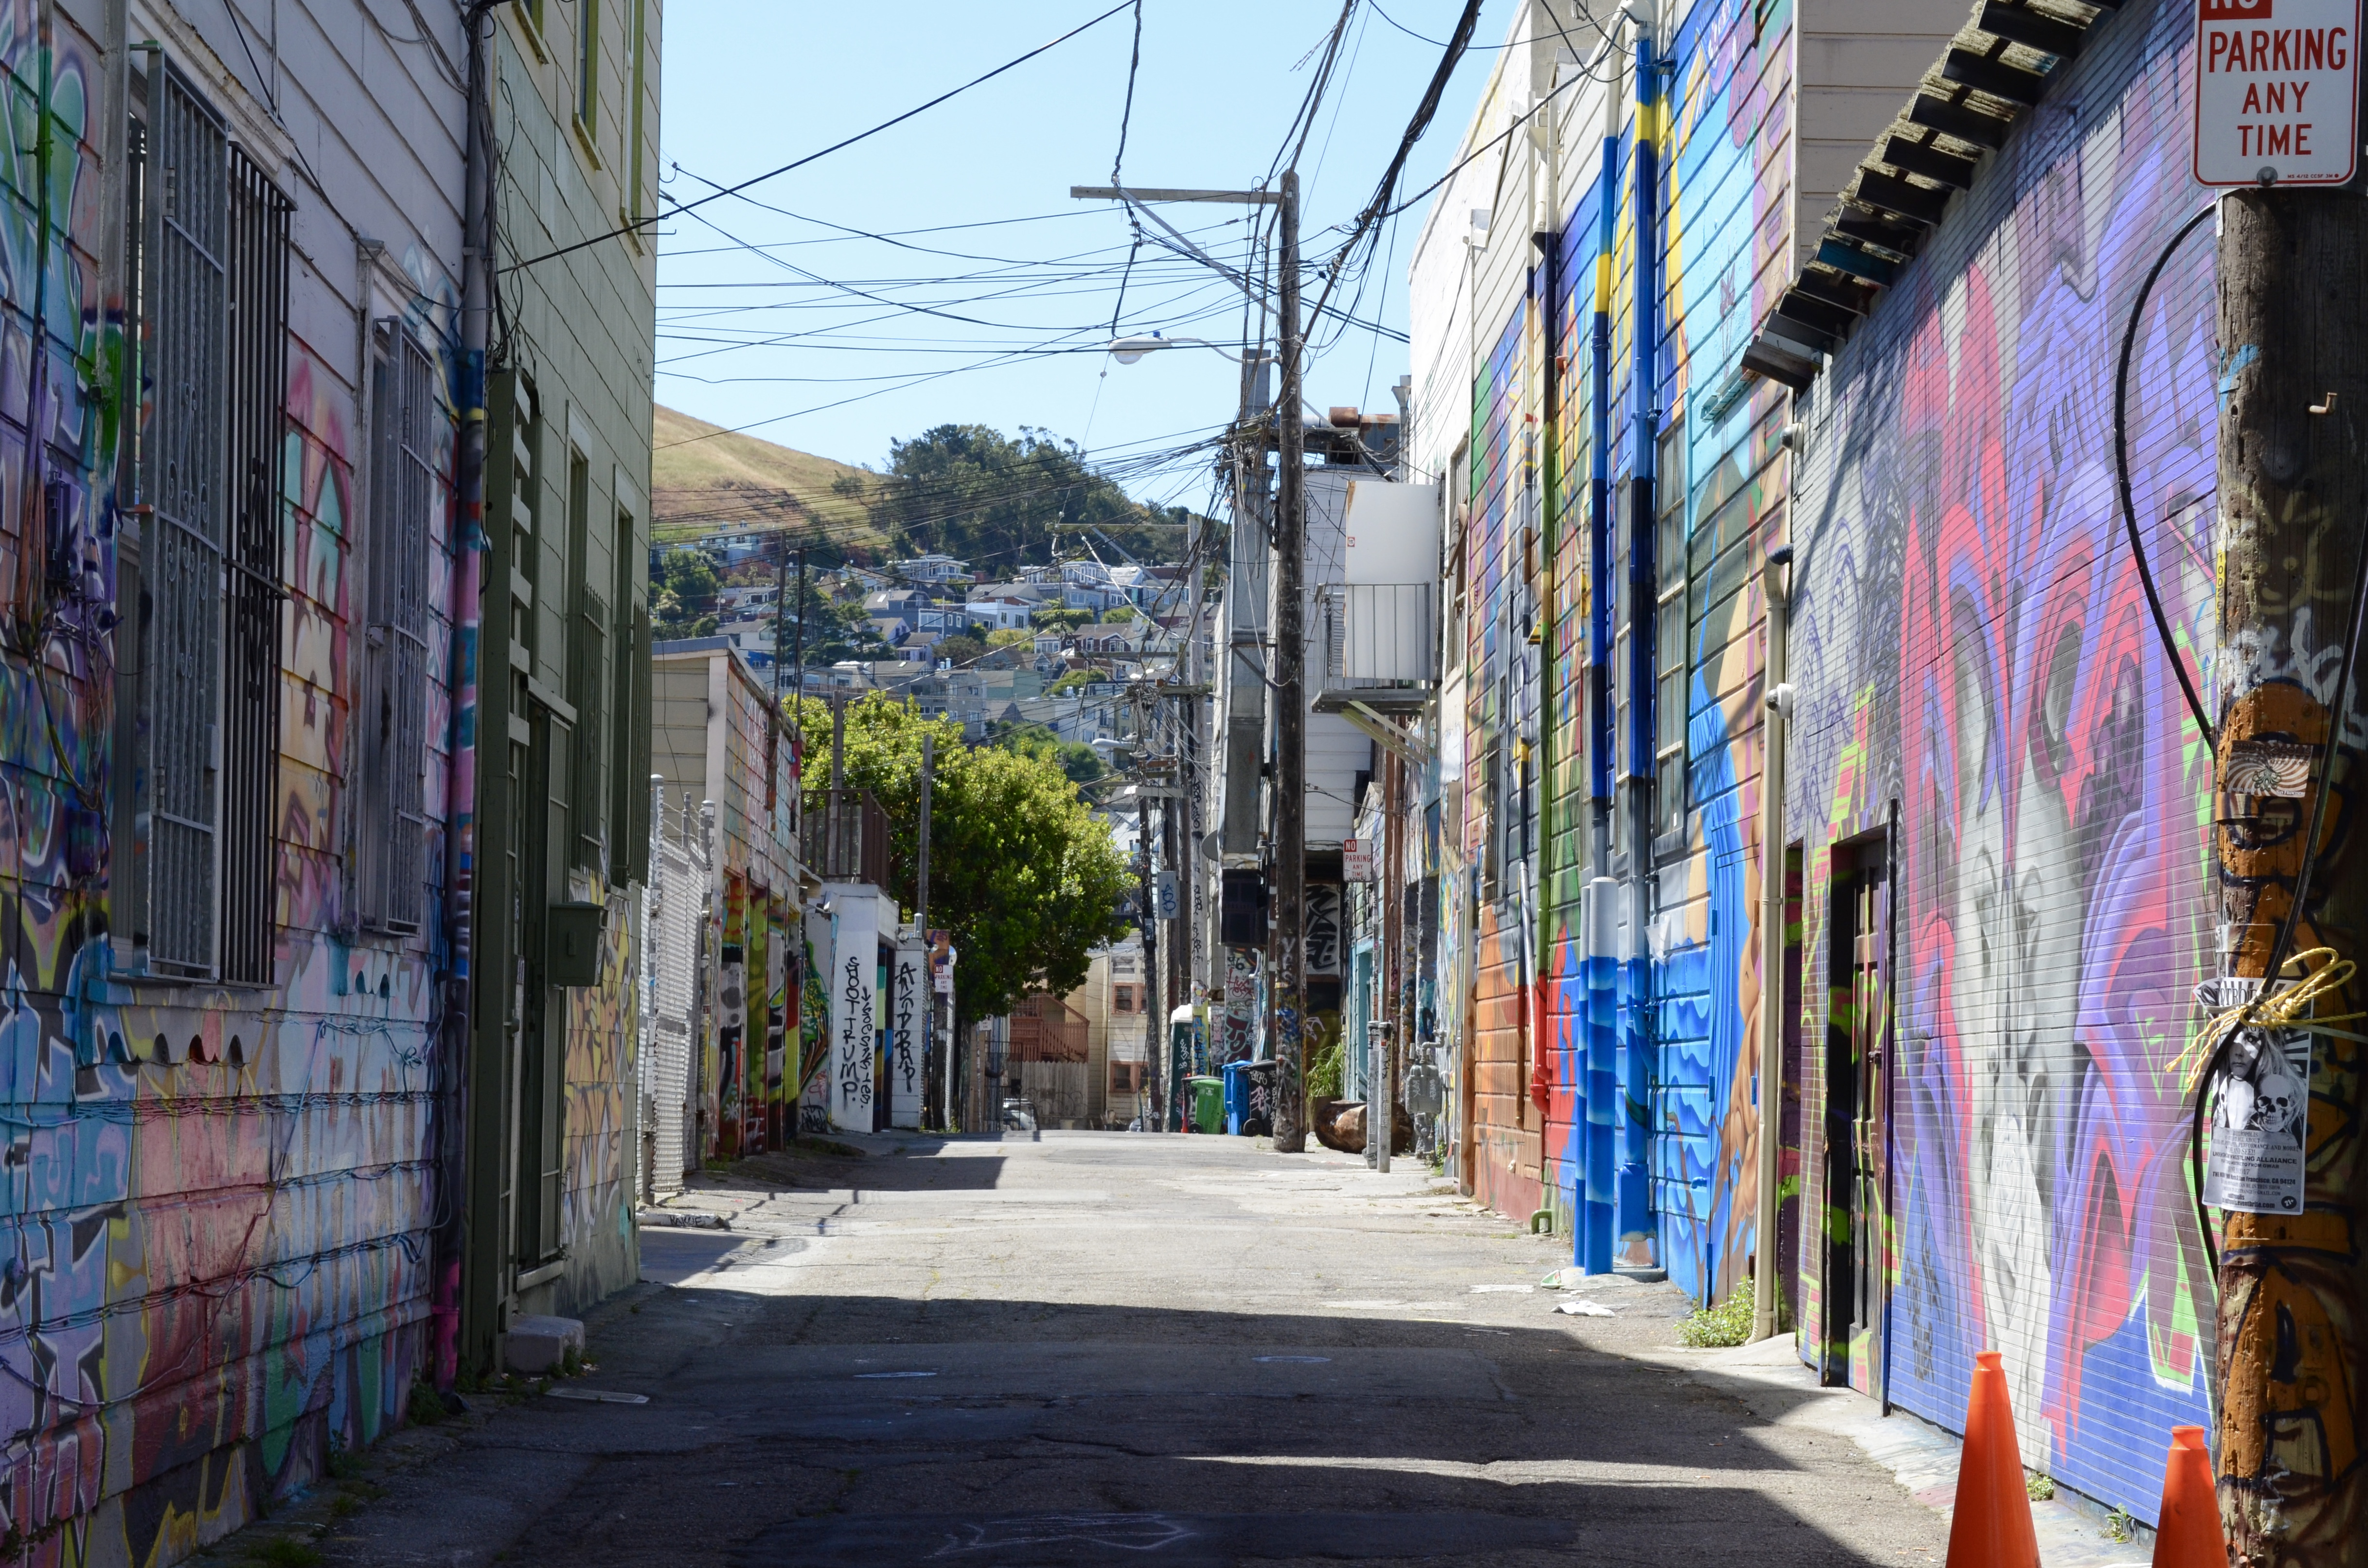 Photo Essay: Looking Down Some Alleys